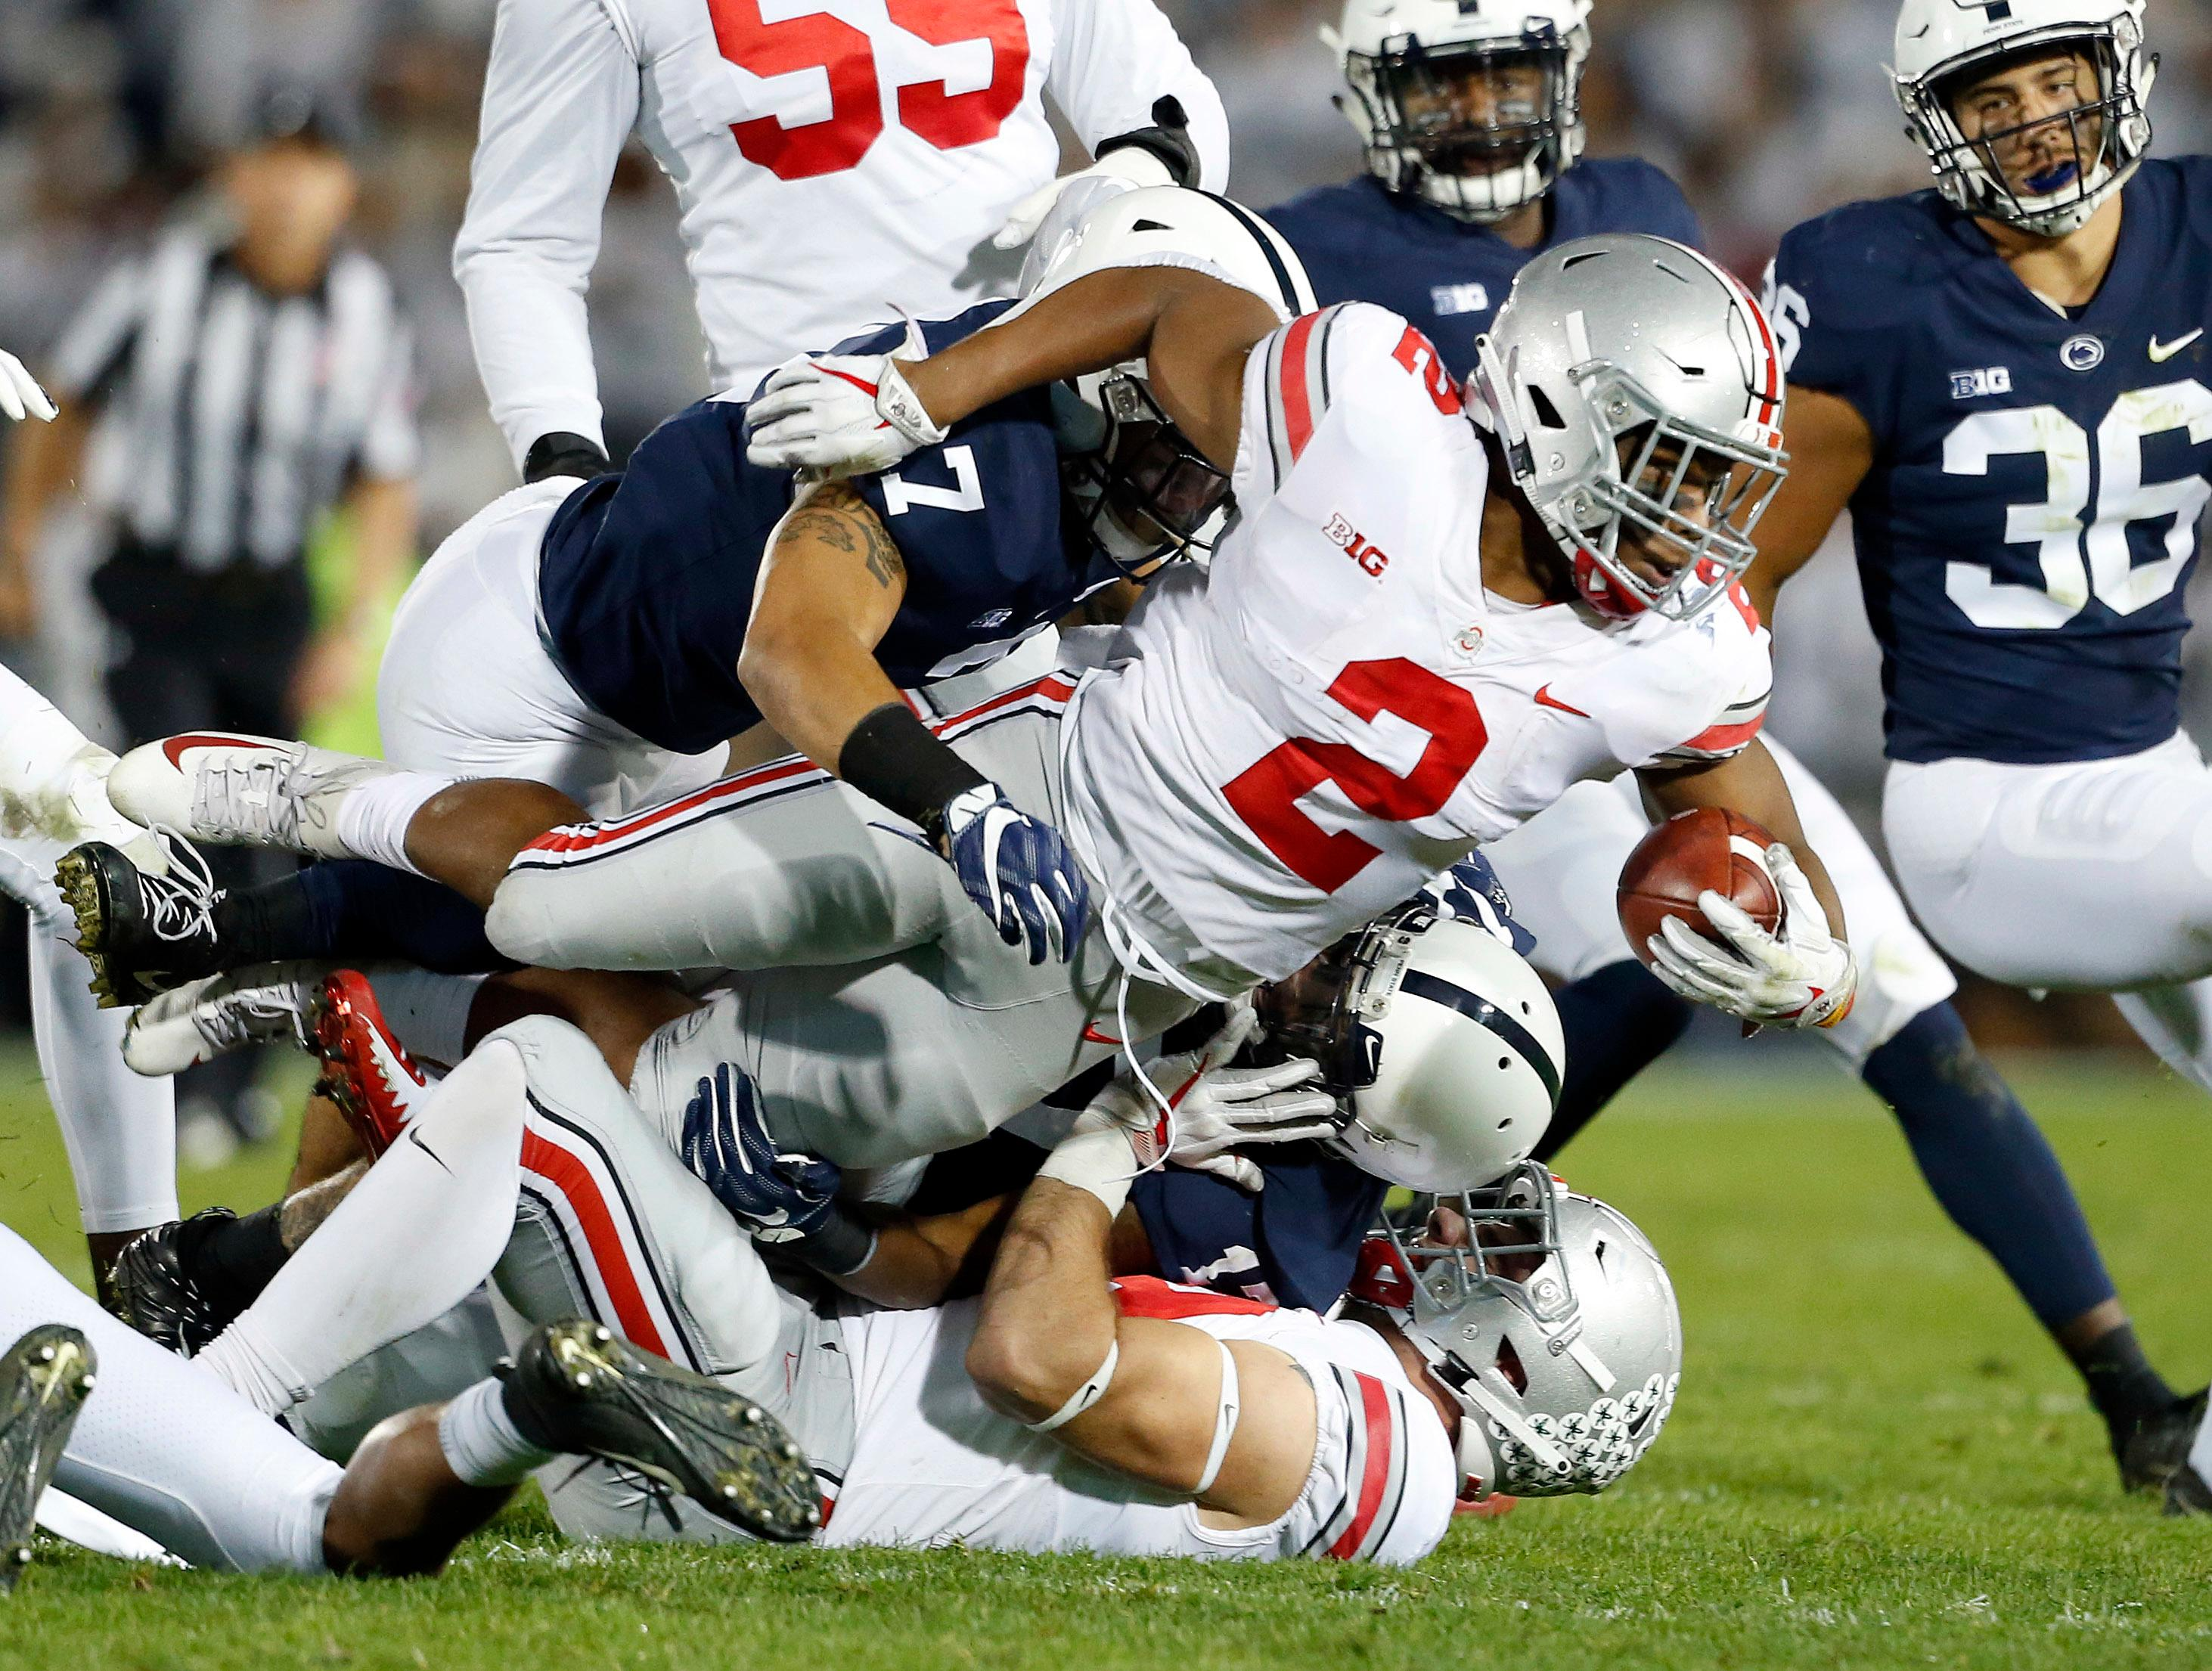 Ohio State's J.K. Dobbins (2) is tackled by Penn State's Koa Farmer (7) during the first half of an NCAA college football game in State College, Pa., Saturday, Sept. 29, 2018. (AP Photo/Chris Knight)